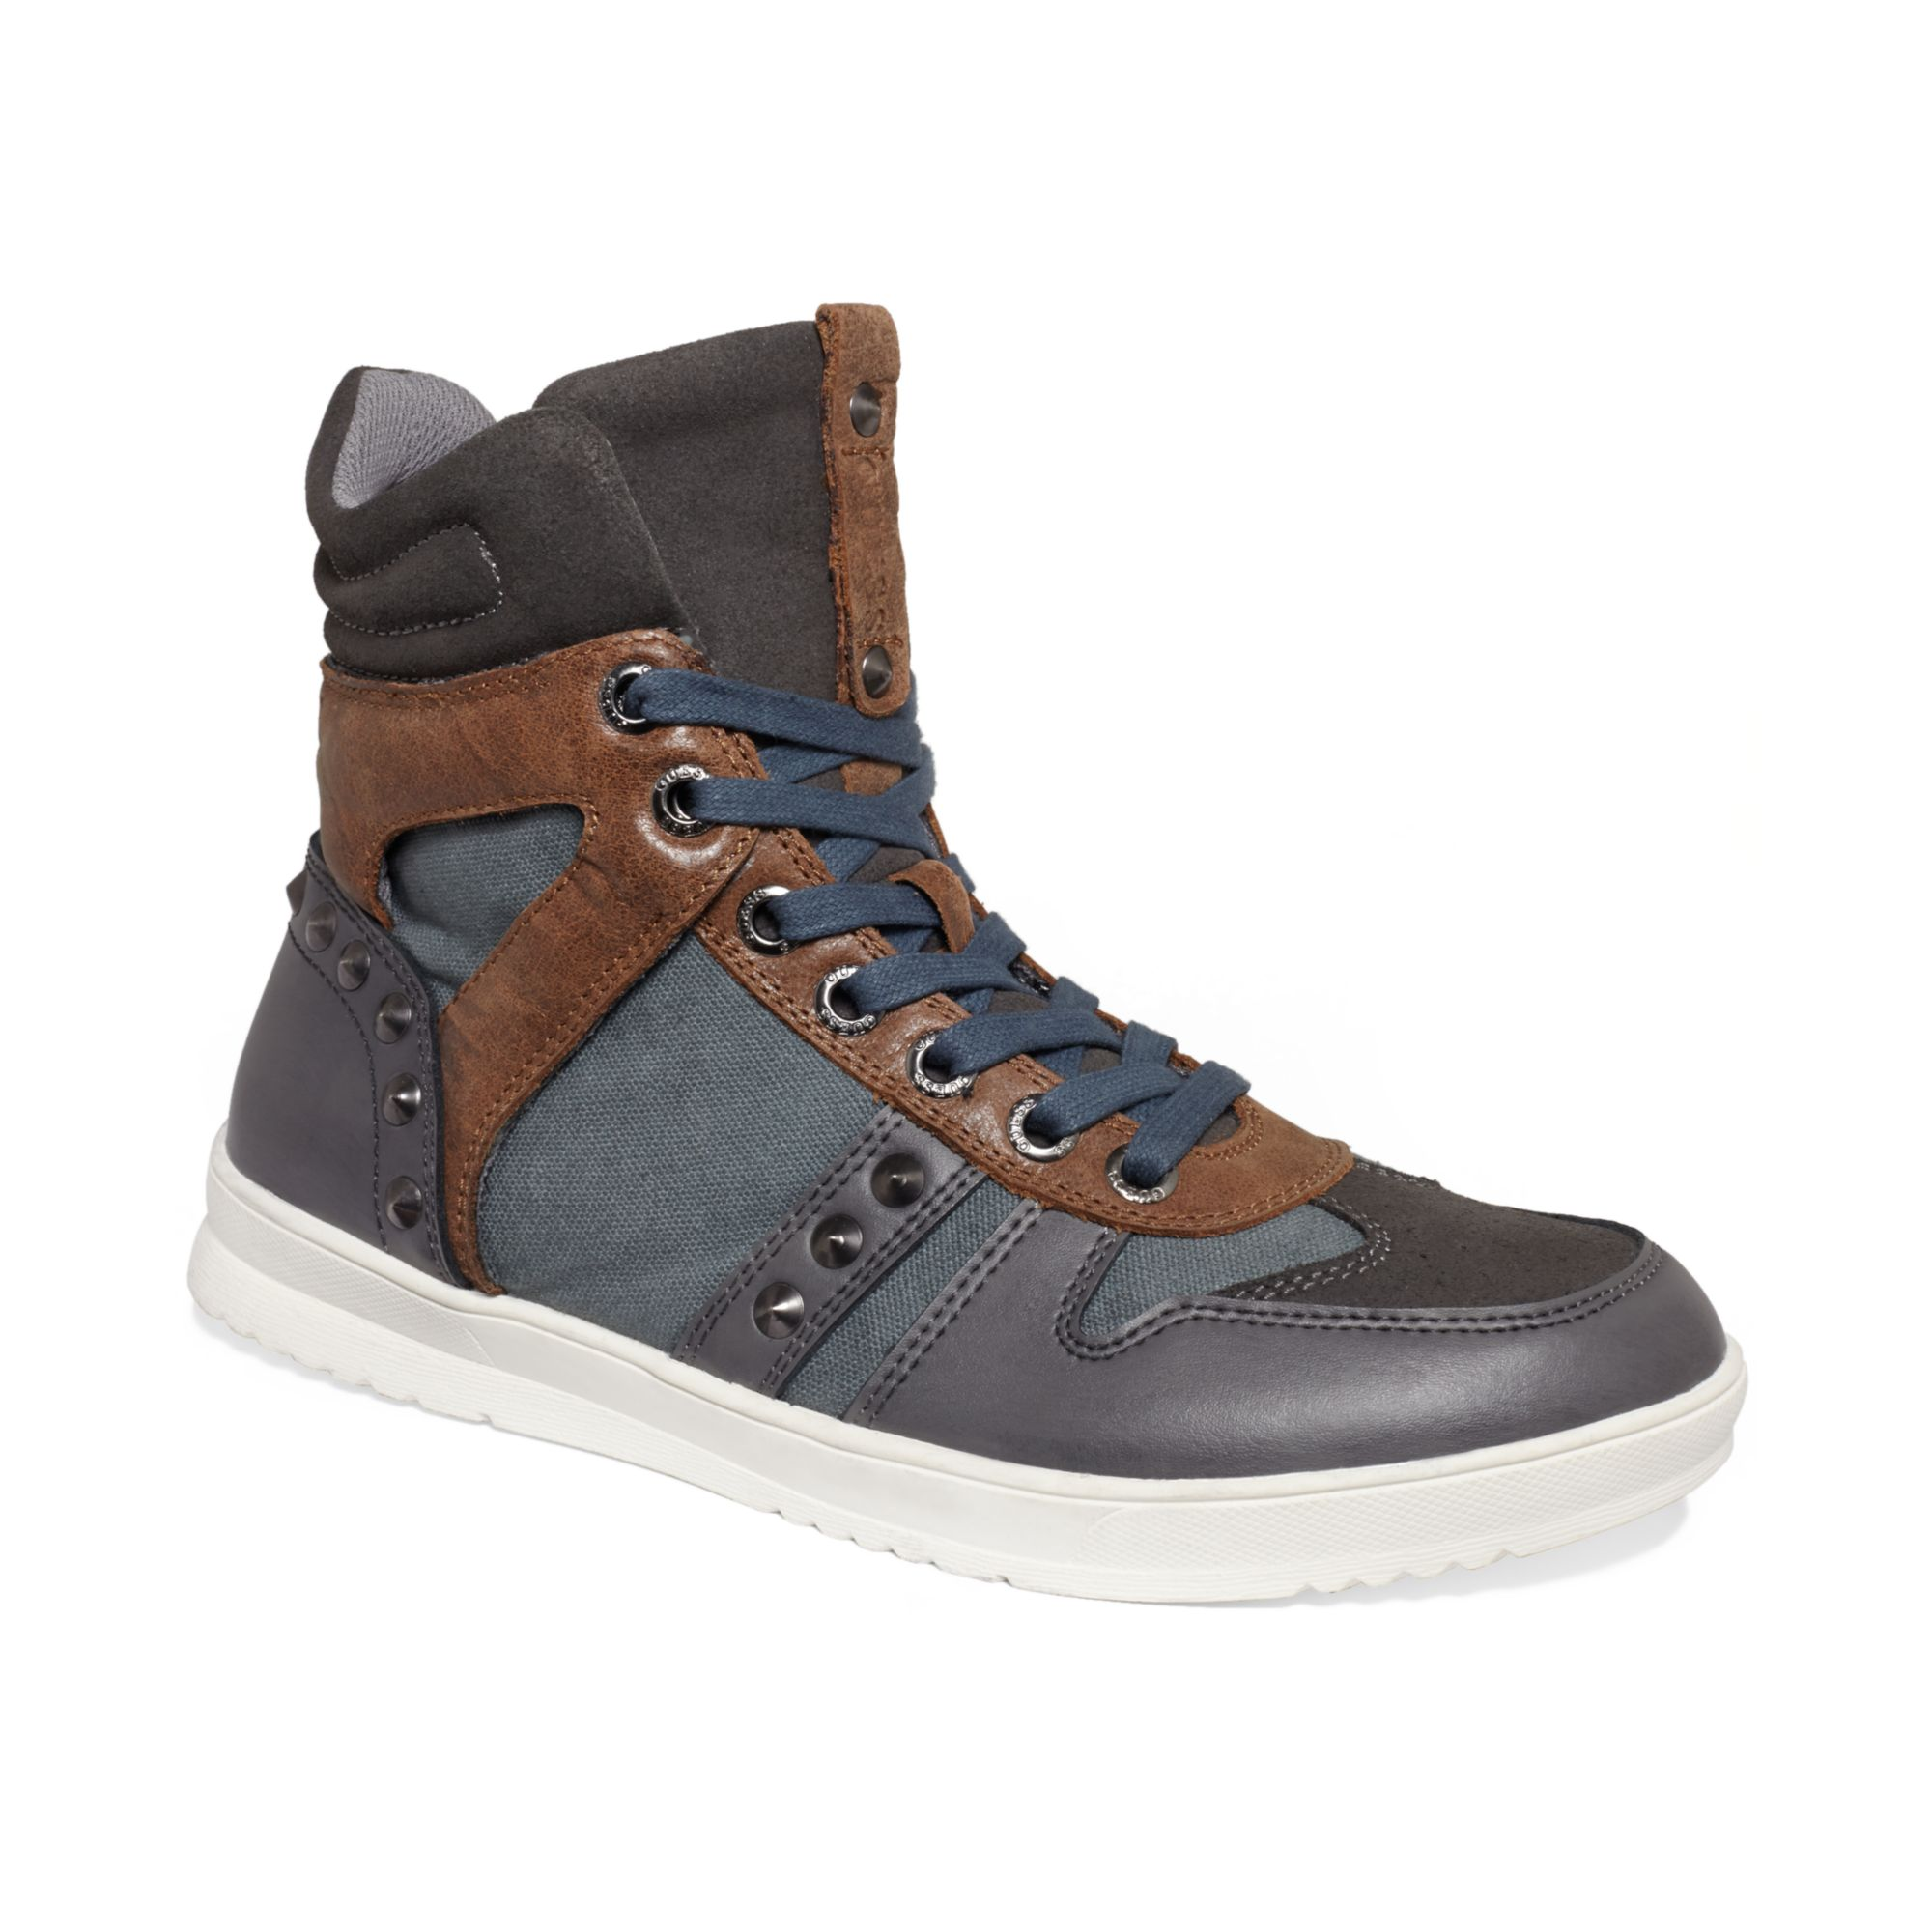 Guess Mens Shoes Tredd Sneakers In Gray For Men Lyst